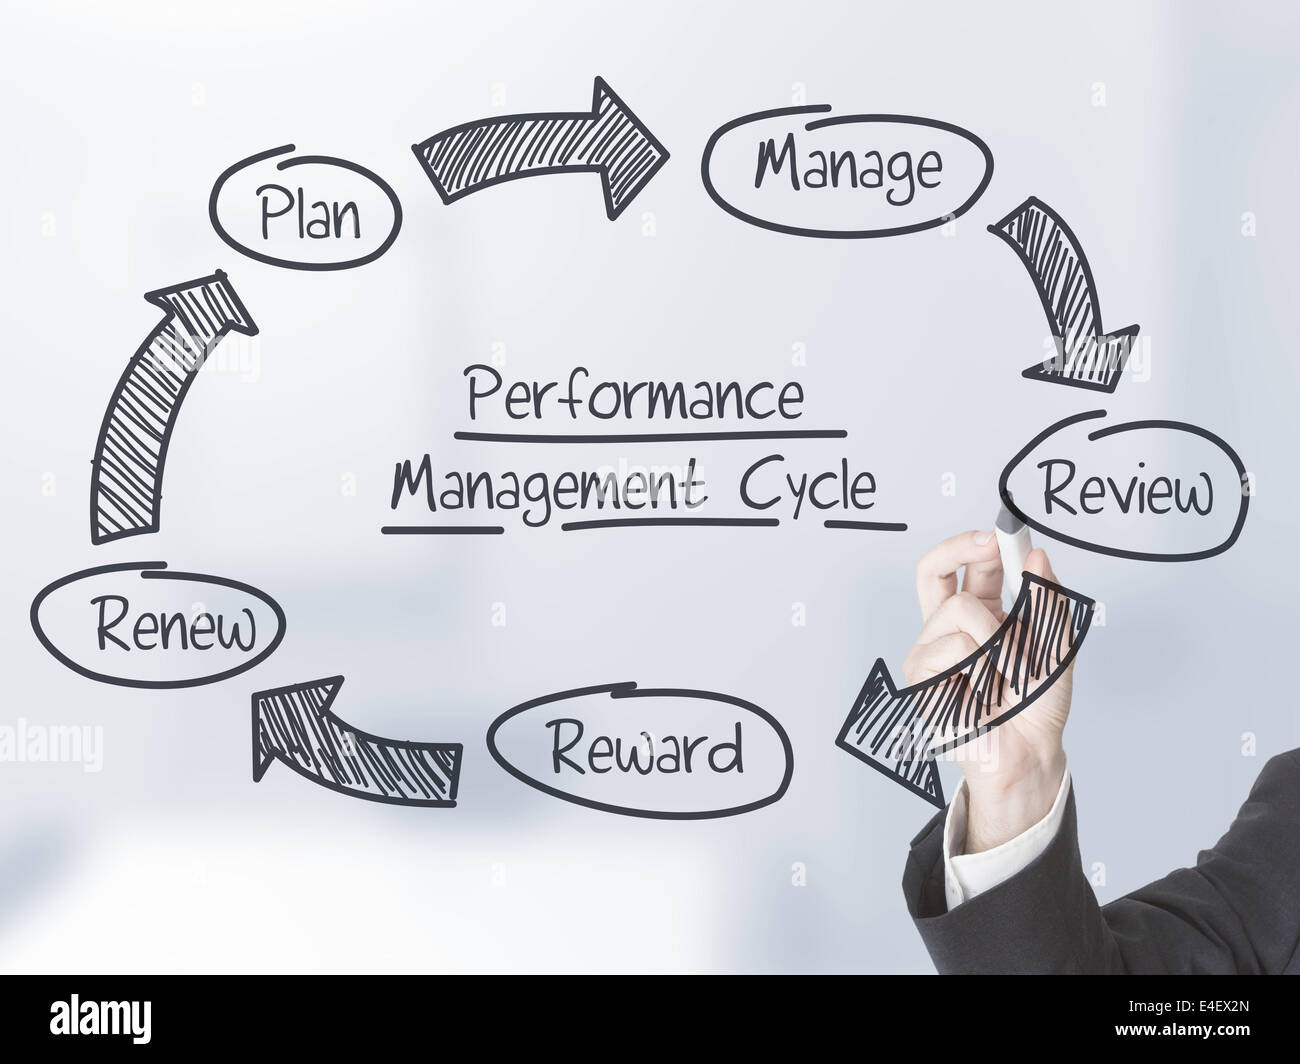 performance improvement cycle diagram of an apple worksheet businessman drawing management schema on